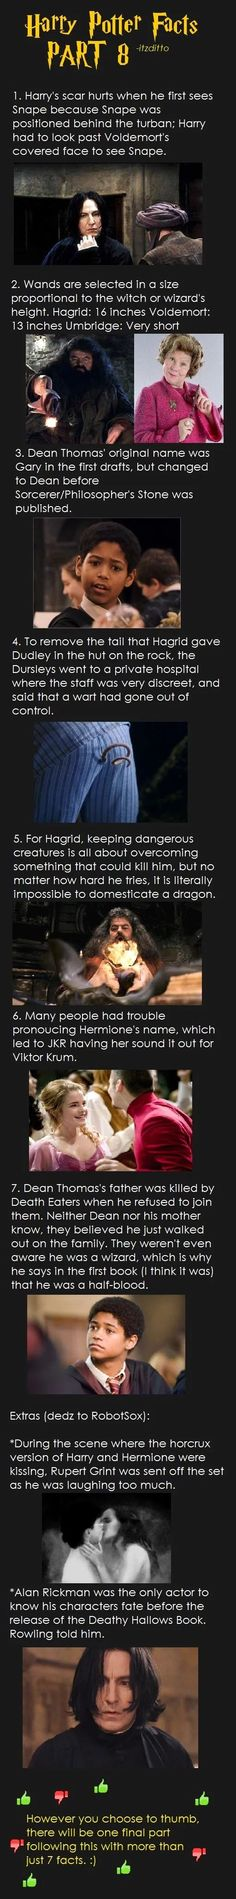 Funny pictures about Facts you probably didn't know about Harry Potter. Oh, and cool pics about Facts you probably didn't know about Harry Potter. Also, Facts you probably didn't know about Harry Potter. Harry Potter Love, Harry Potter Fandom, Harry Potter Universal, Harry Potter Memes, Harry Potter World, Hogwarts, Slytherin, Golden Trio, Scorpius And Rose